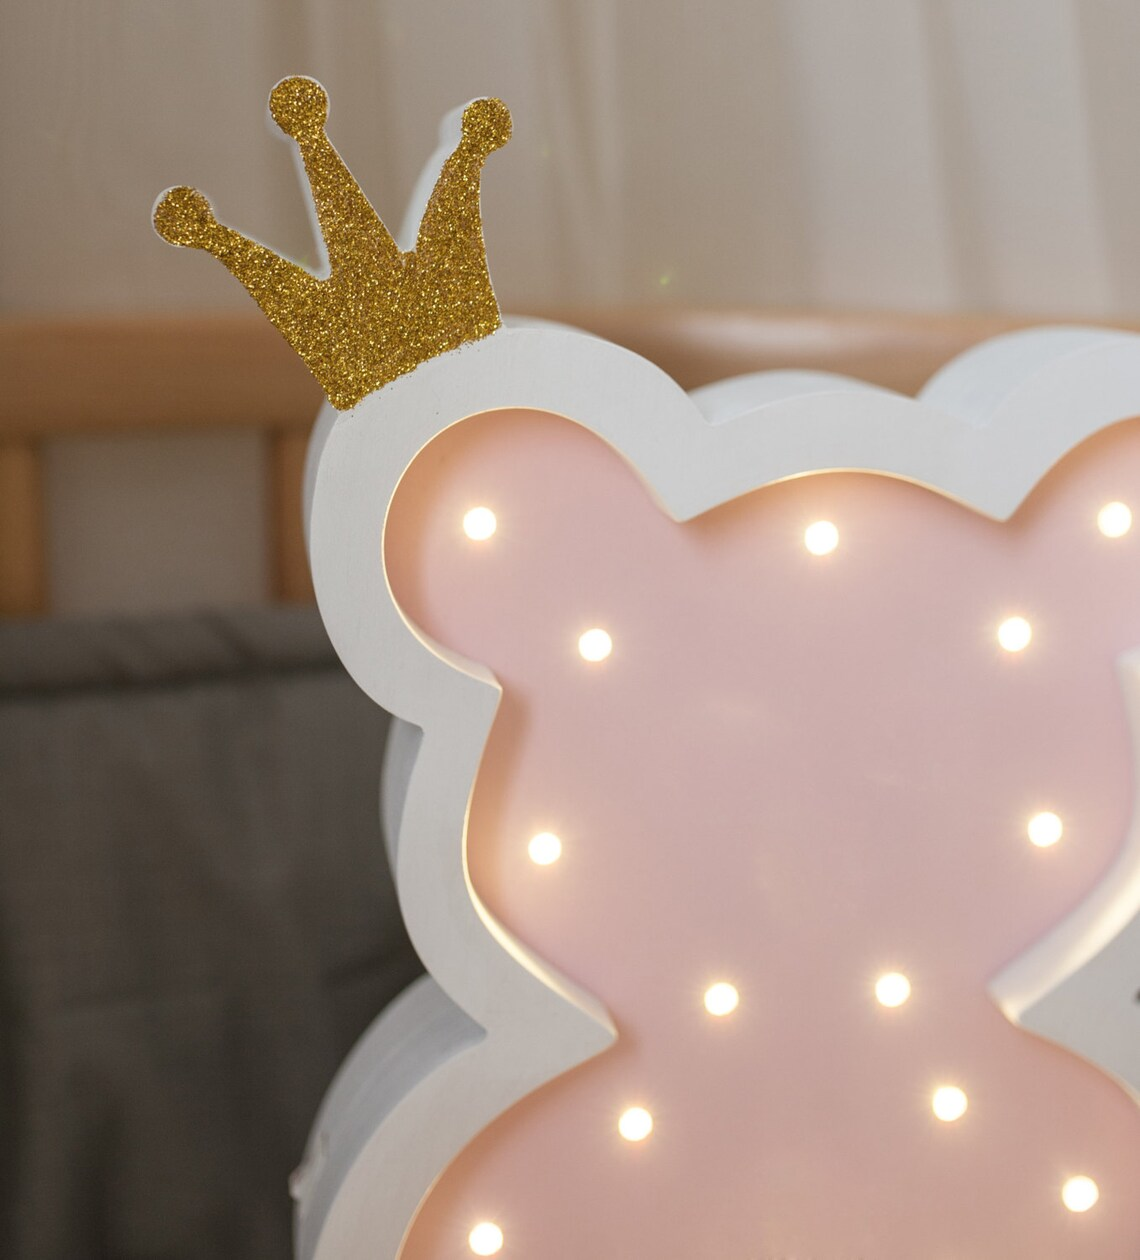 Night light lamp - Teddy bear - Bear lamp - Gift for baby - Kids lamp - Lamp Bear with crown  - Eclairage